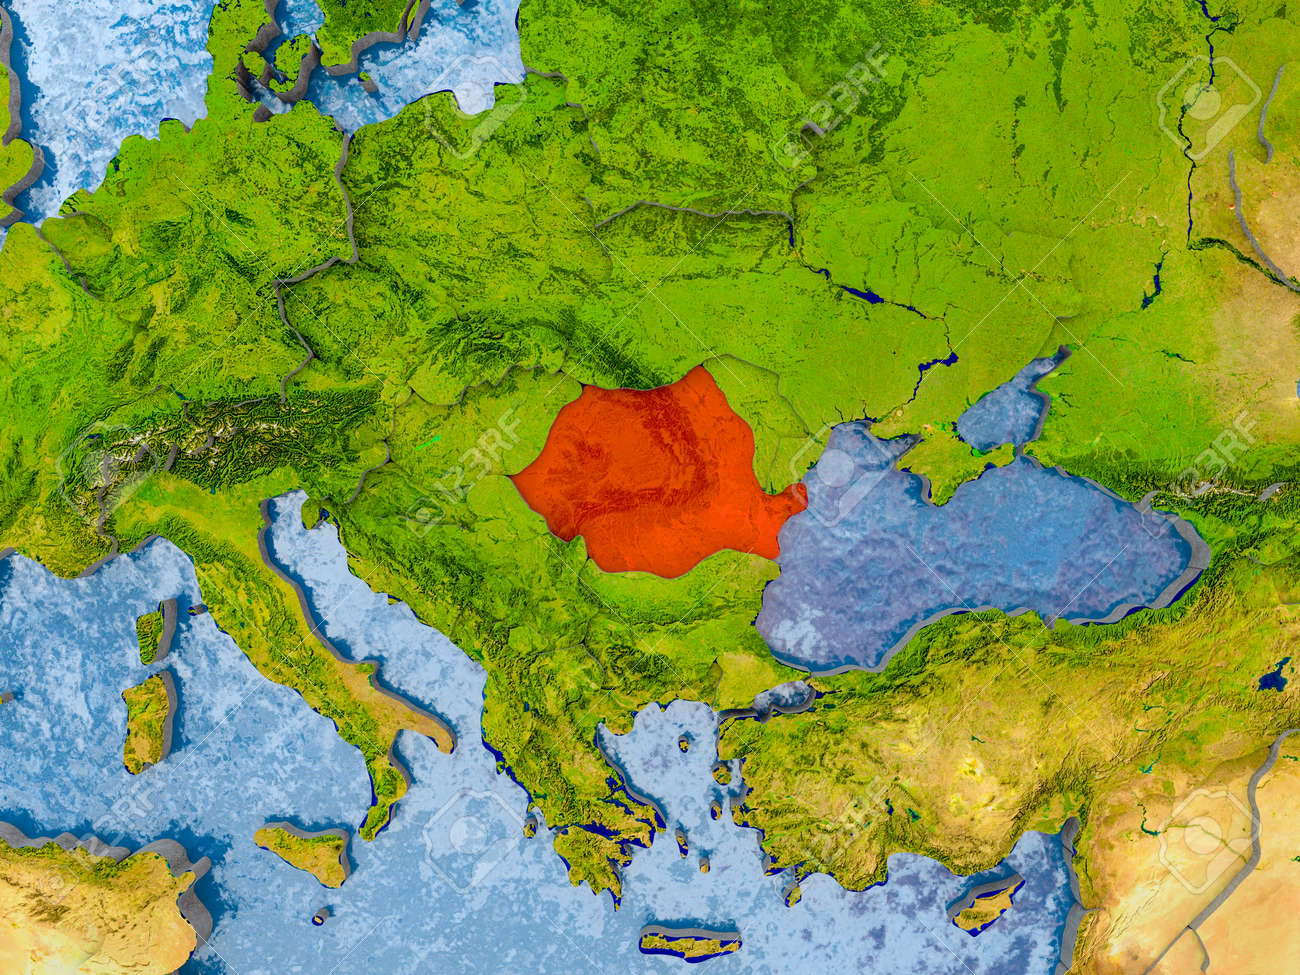 Romania in red on realistic map with embossed countries 3d illustration romania in red on realistic map with embossed countries 3d illustration gumiabroncs Images